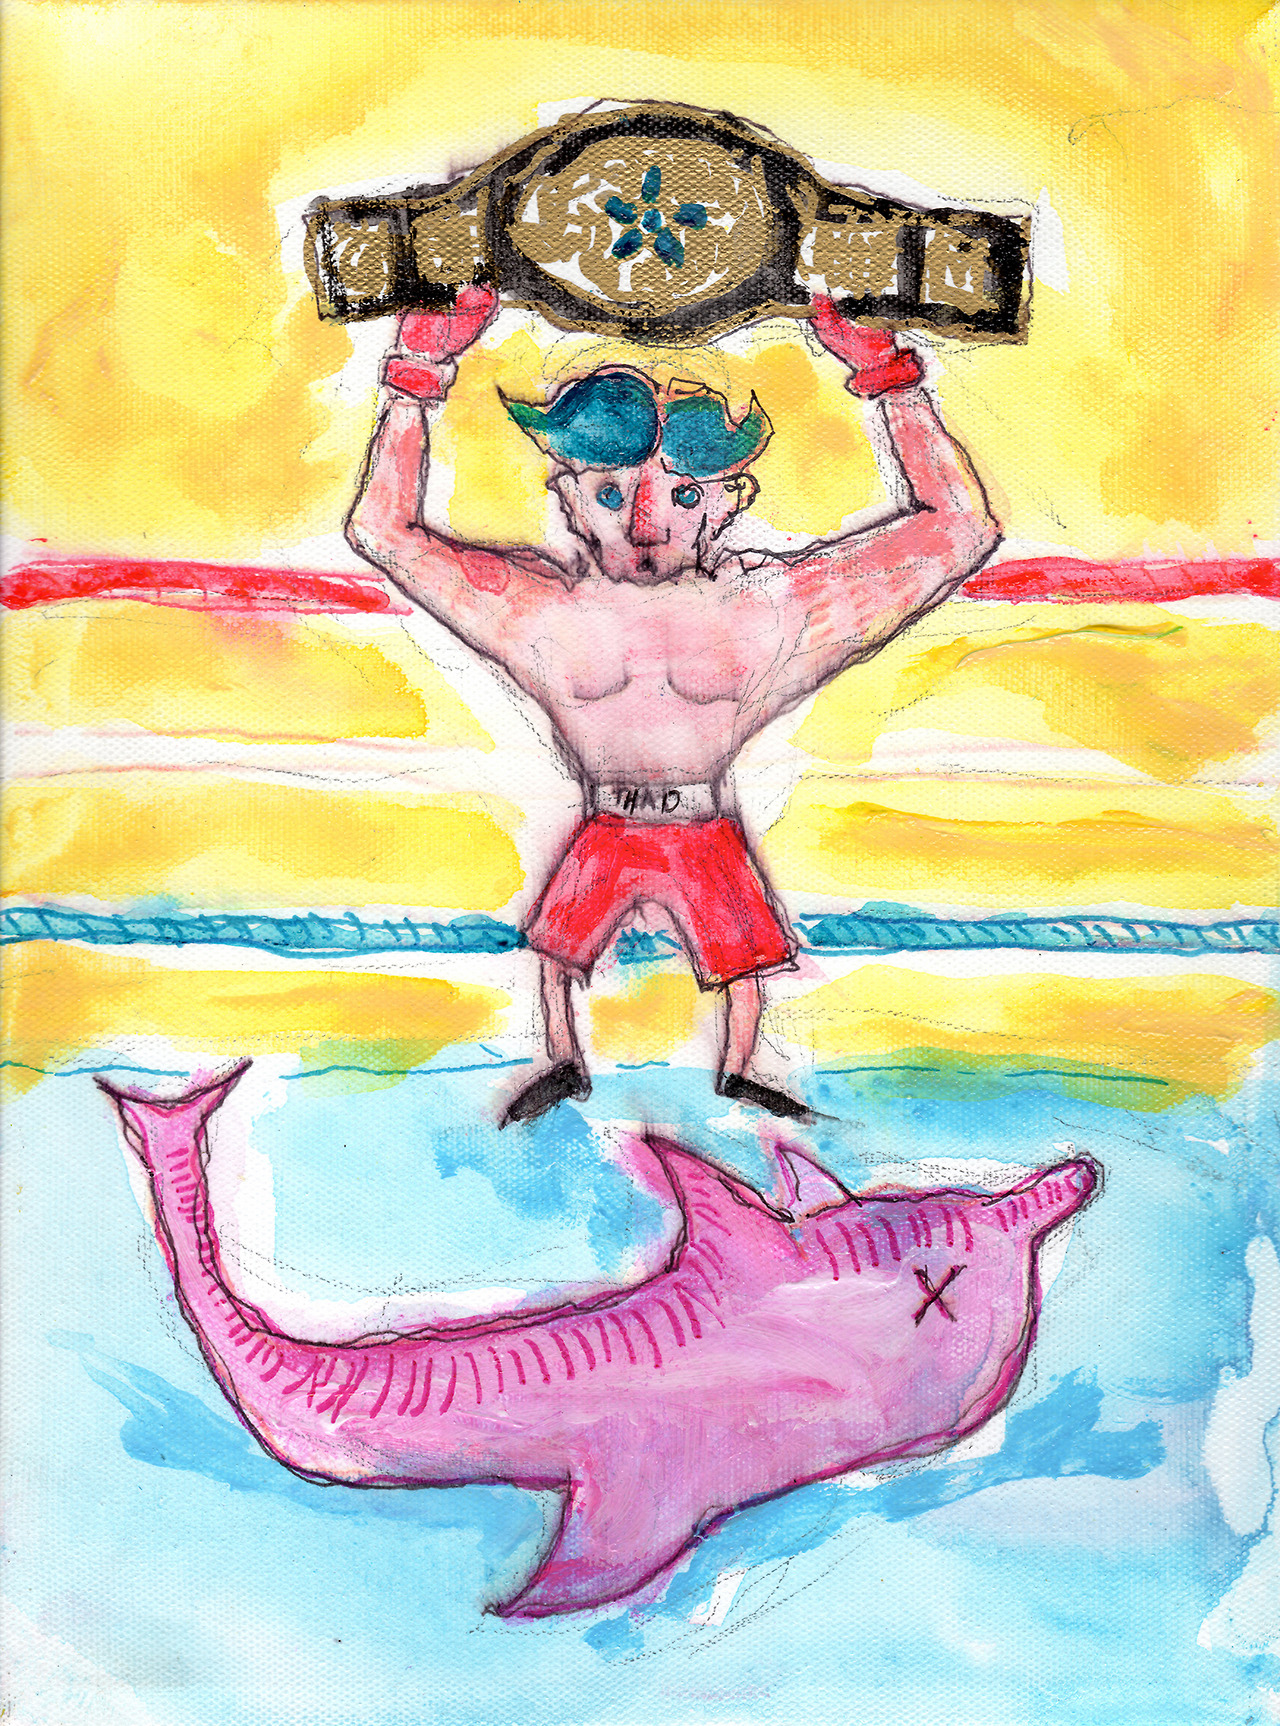 7/20/13 -  Thad Defeats the Porpoise.    Yeah, it's punny.   Buy it here -  http://taylorwinder.bigcartel.com    Prints here -  http://society6.com/taylorwinder